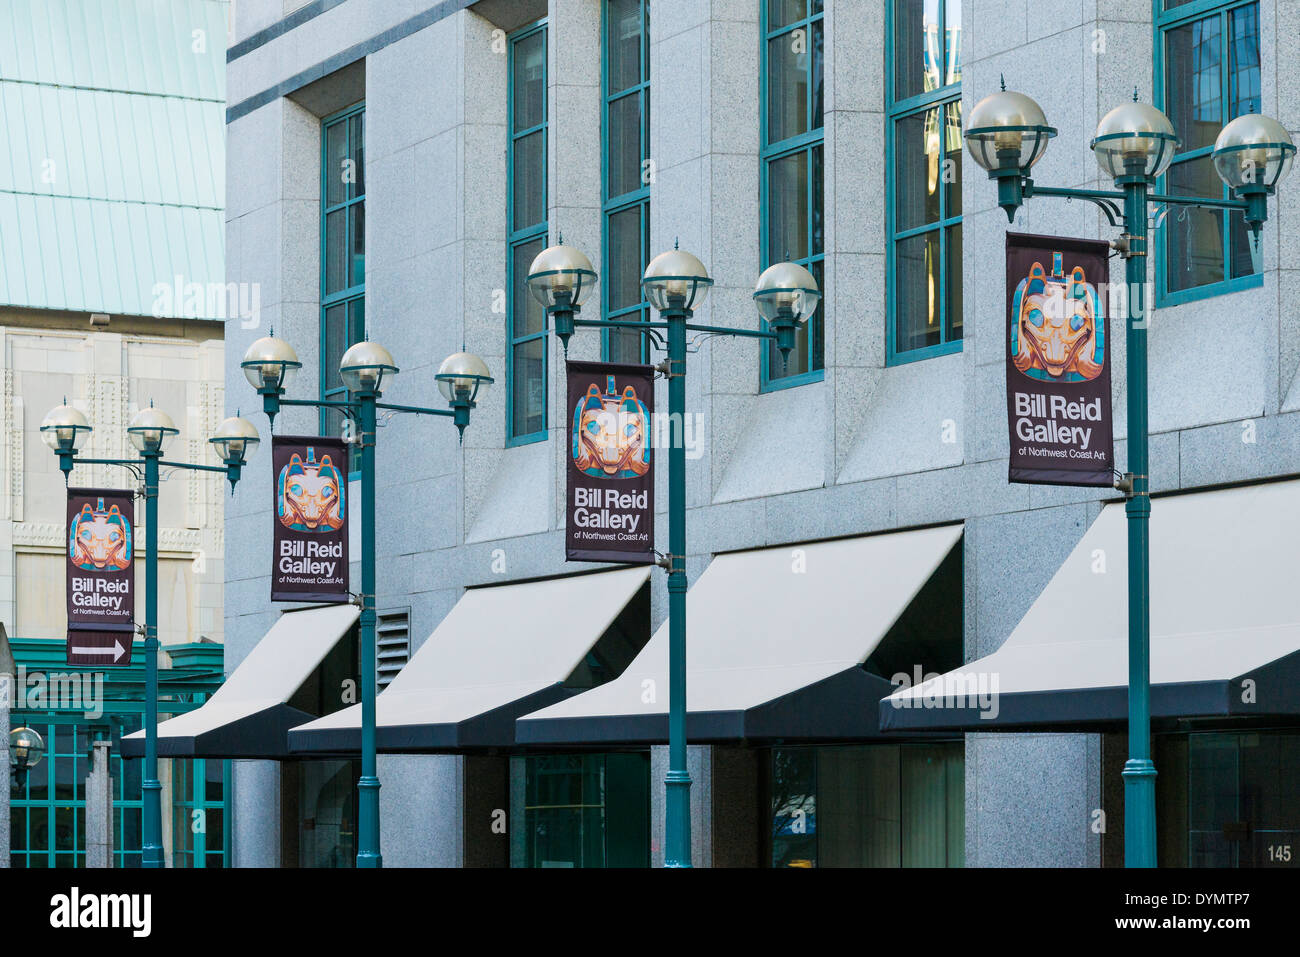 Banners outside the Bill Reid Gallery, Vancouver, British Columbia, Canada - Stock Image